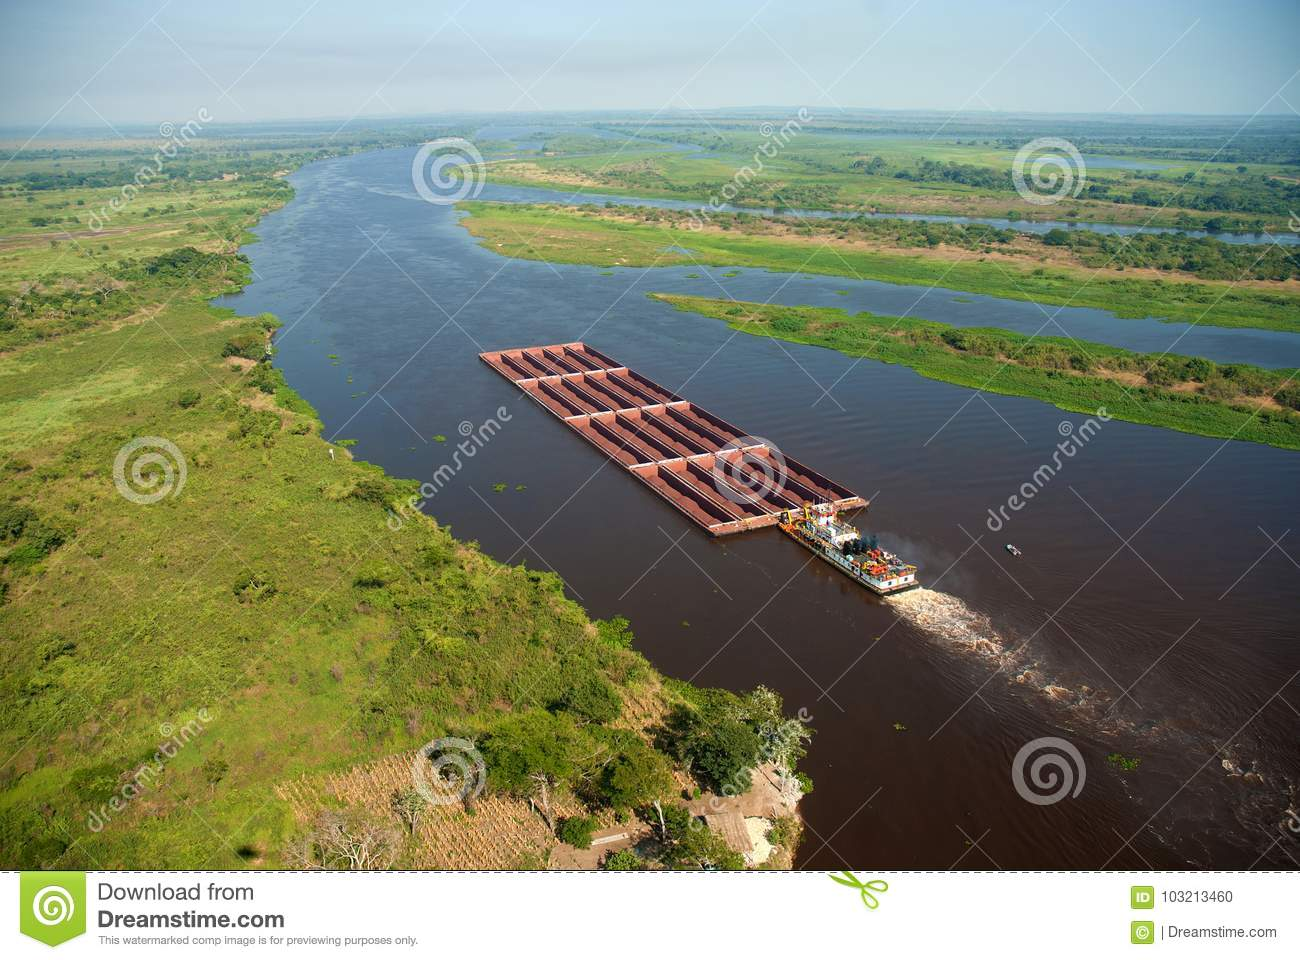 Paraguay River On A Map, Paraguay River, Paraguay River On A Map